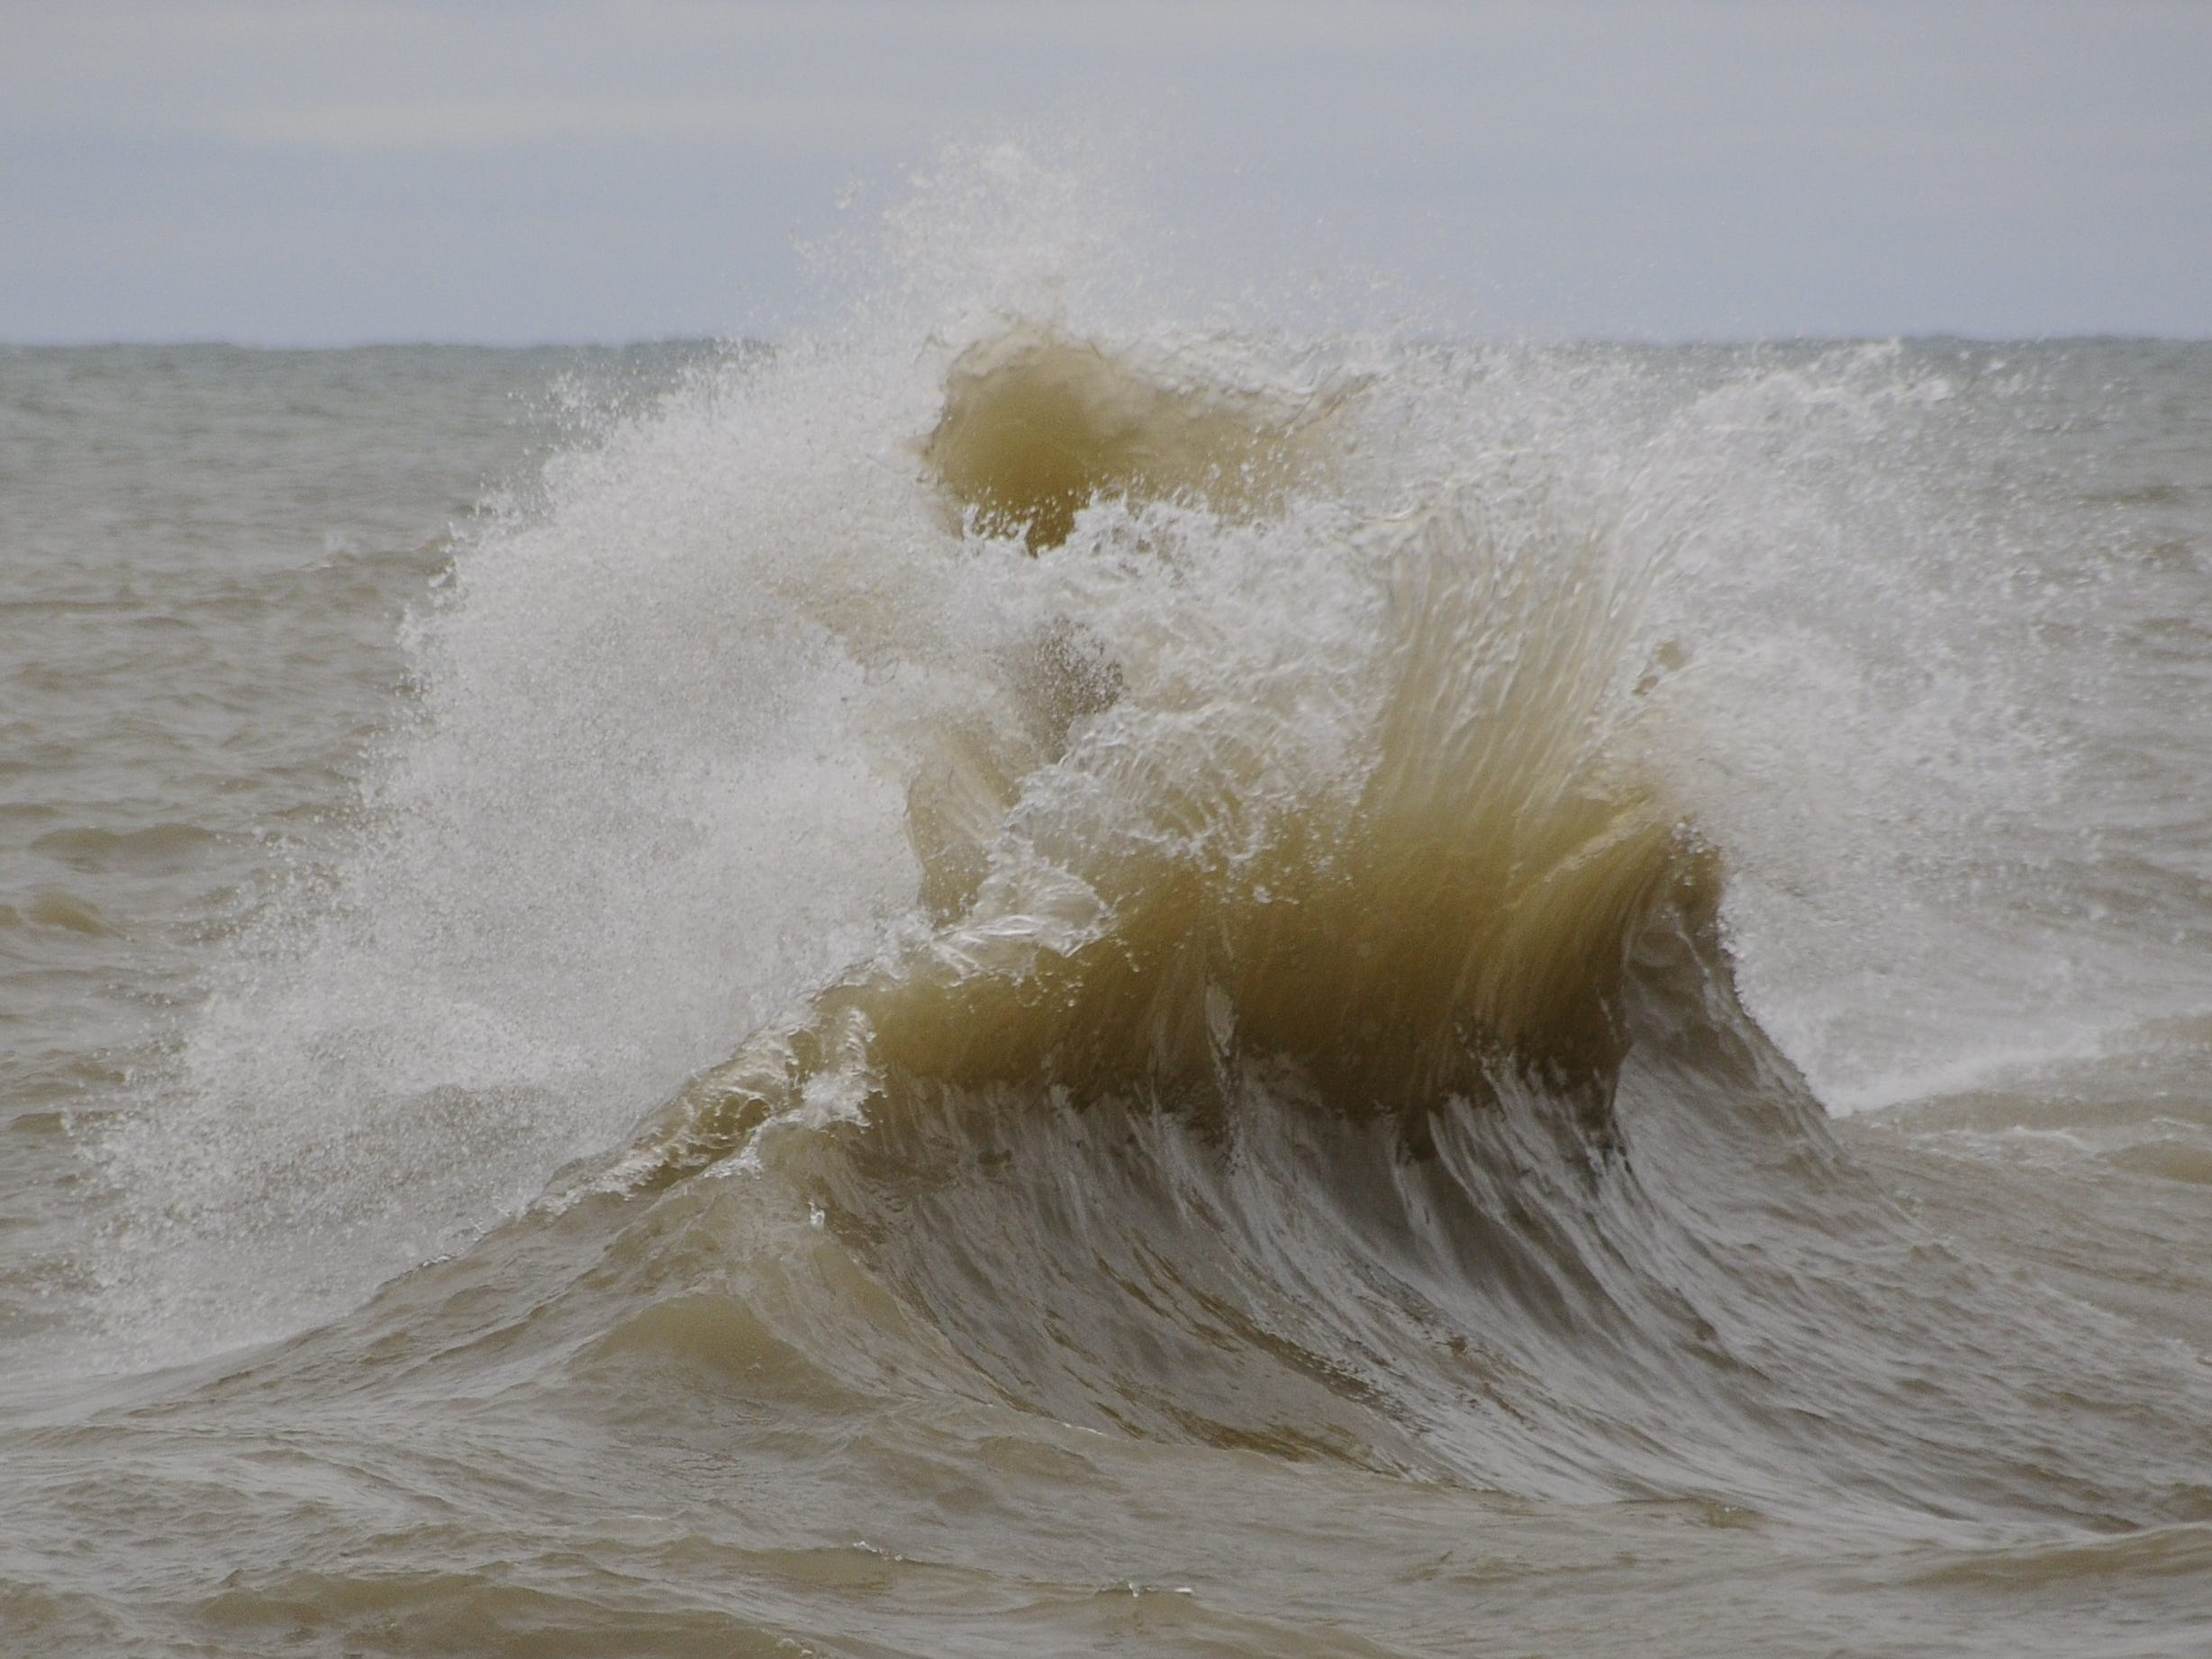 Waves collide in Port Sanilac on New Year's Day 2019.